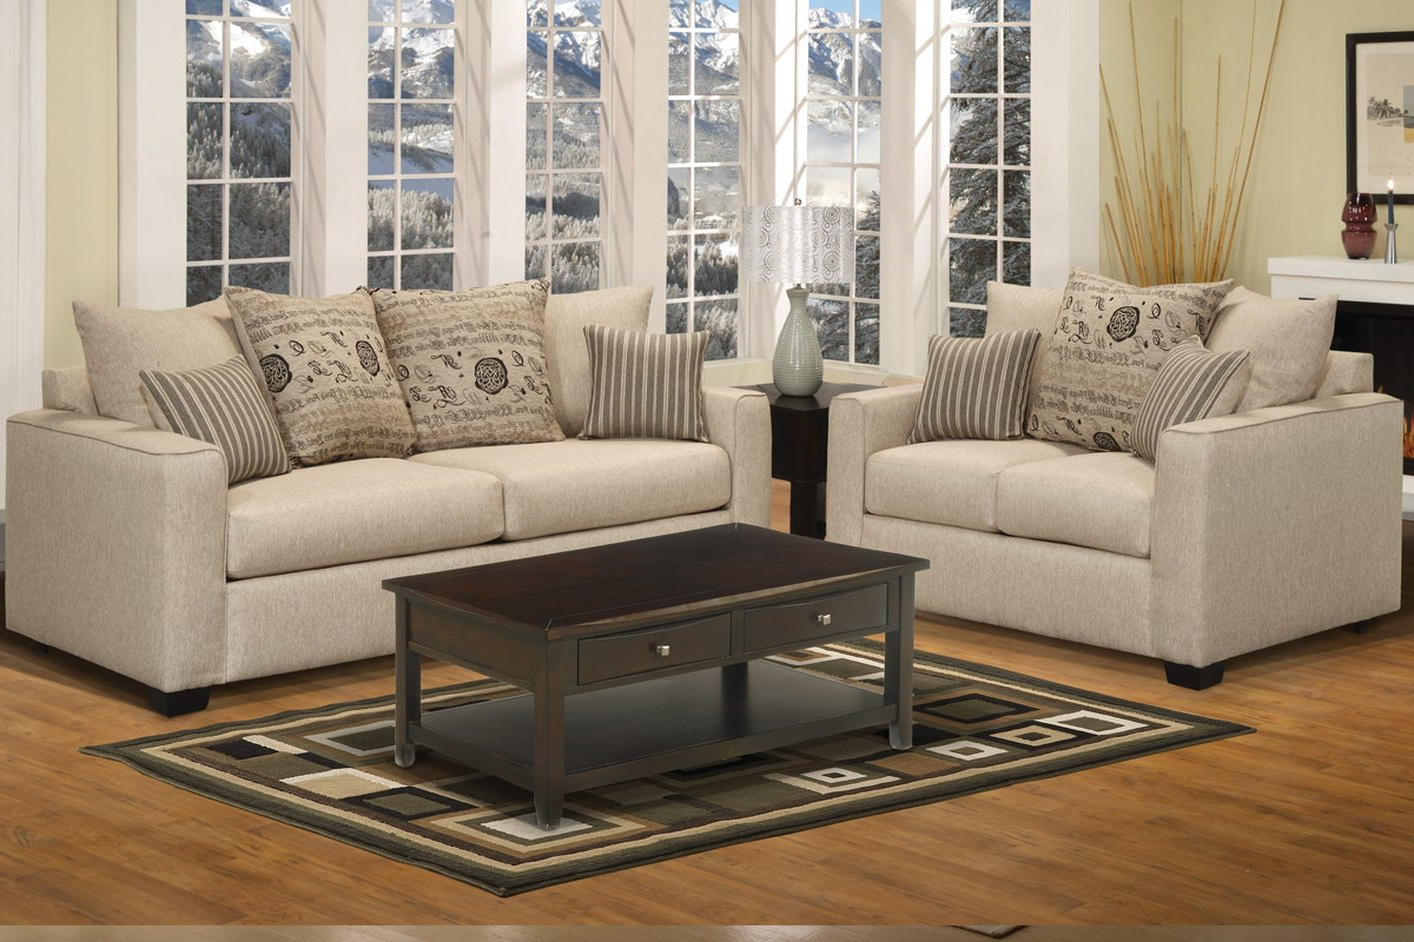 Sofa Loveseat And Chairs Within Fashionable Sofa & Loveseat Set – Steal A Sofa Furniture Outlet Los Angeles Ca (View 7 of 20)